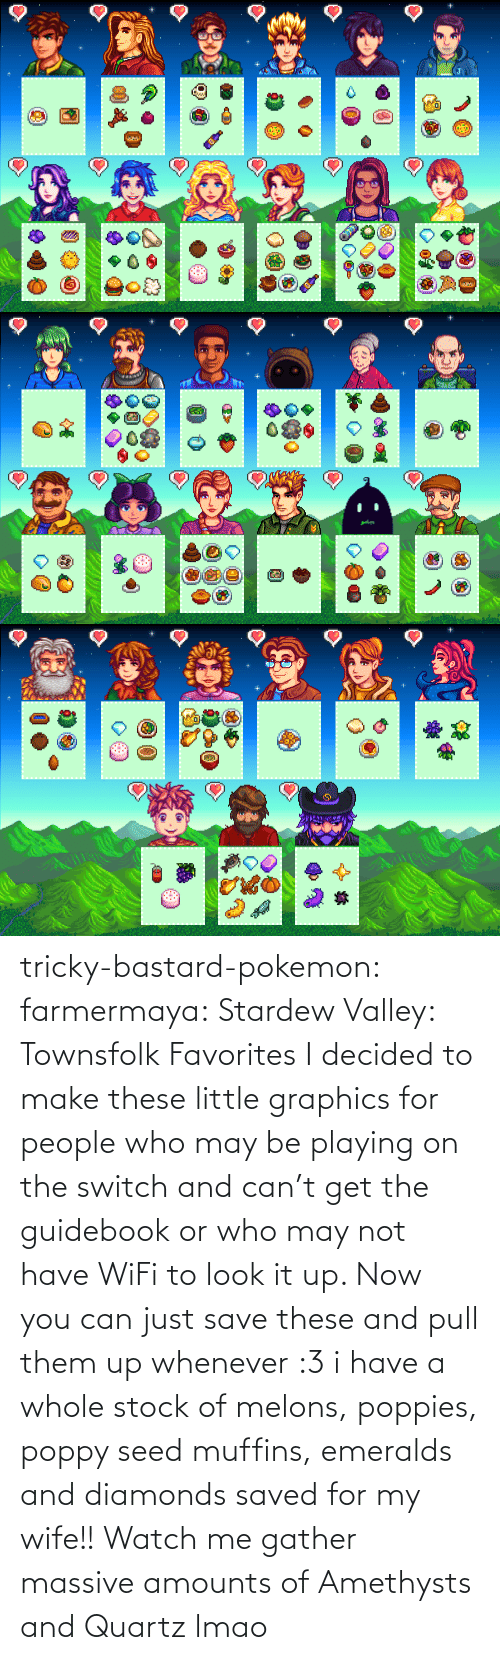 Favorites: tricky-bastard-pokemon:  farmermaya: Stardew Valley: Townsfolk Favorites  I decided to make these little graphics for people who may be playing on the switch and can't get the guidebook or who may not have WiFi to look it up. Now you can just save these and pull them up whenever :3   i have a whole stock of melons, poppies, poppy seed muffins, emeralds and diamonds saved for my wife!!    Watch me gather massive amounts of Amethysts and Quartz lmao